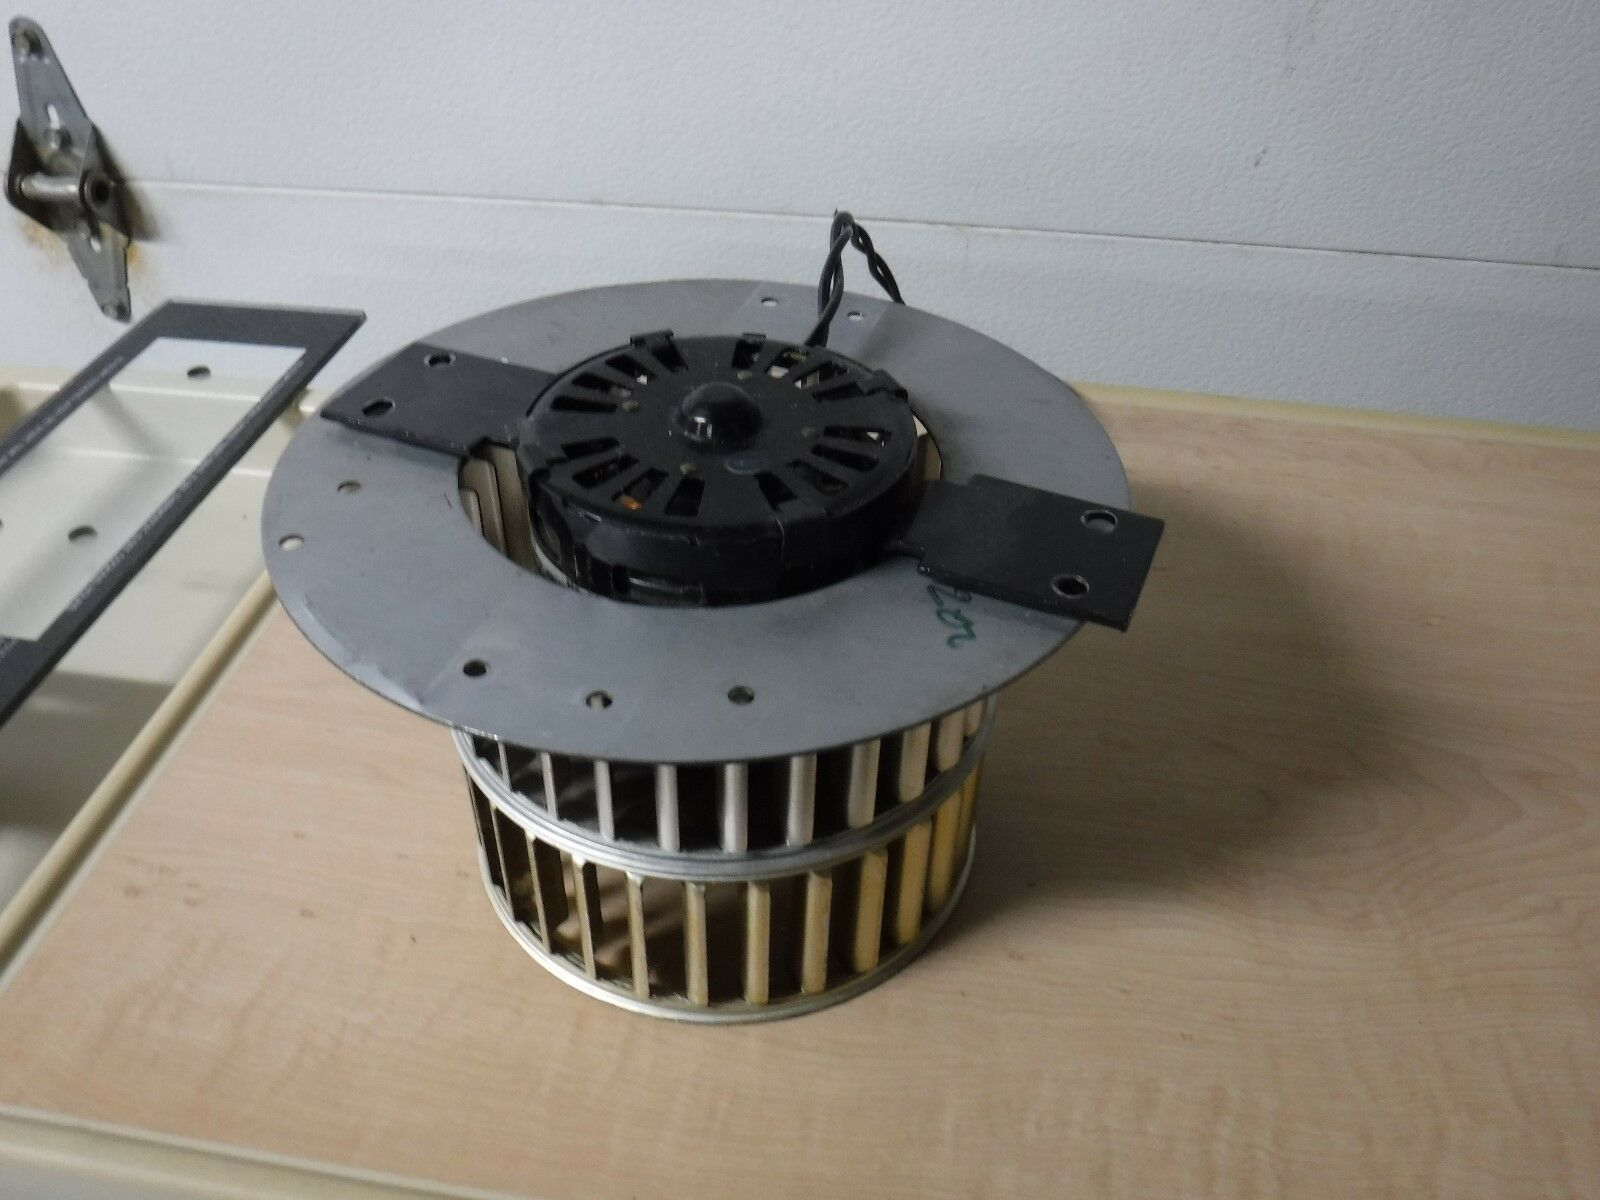 Thermador Oven Fan 14-29-740, 486889